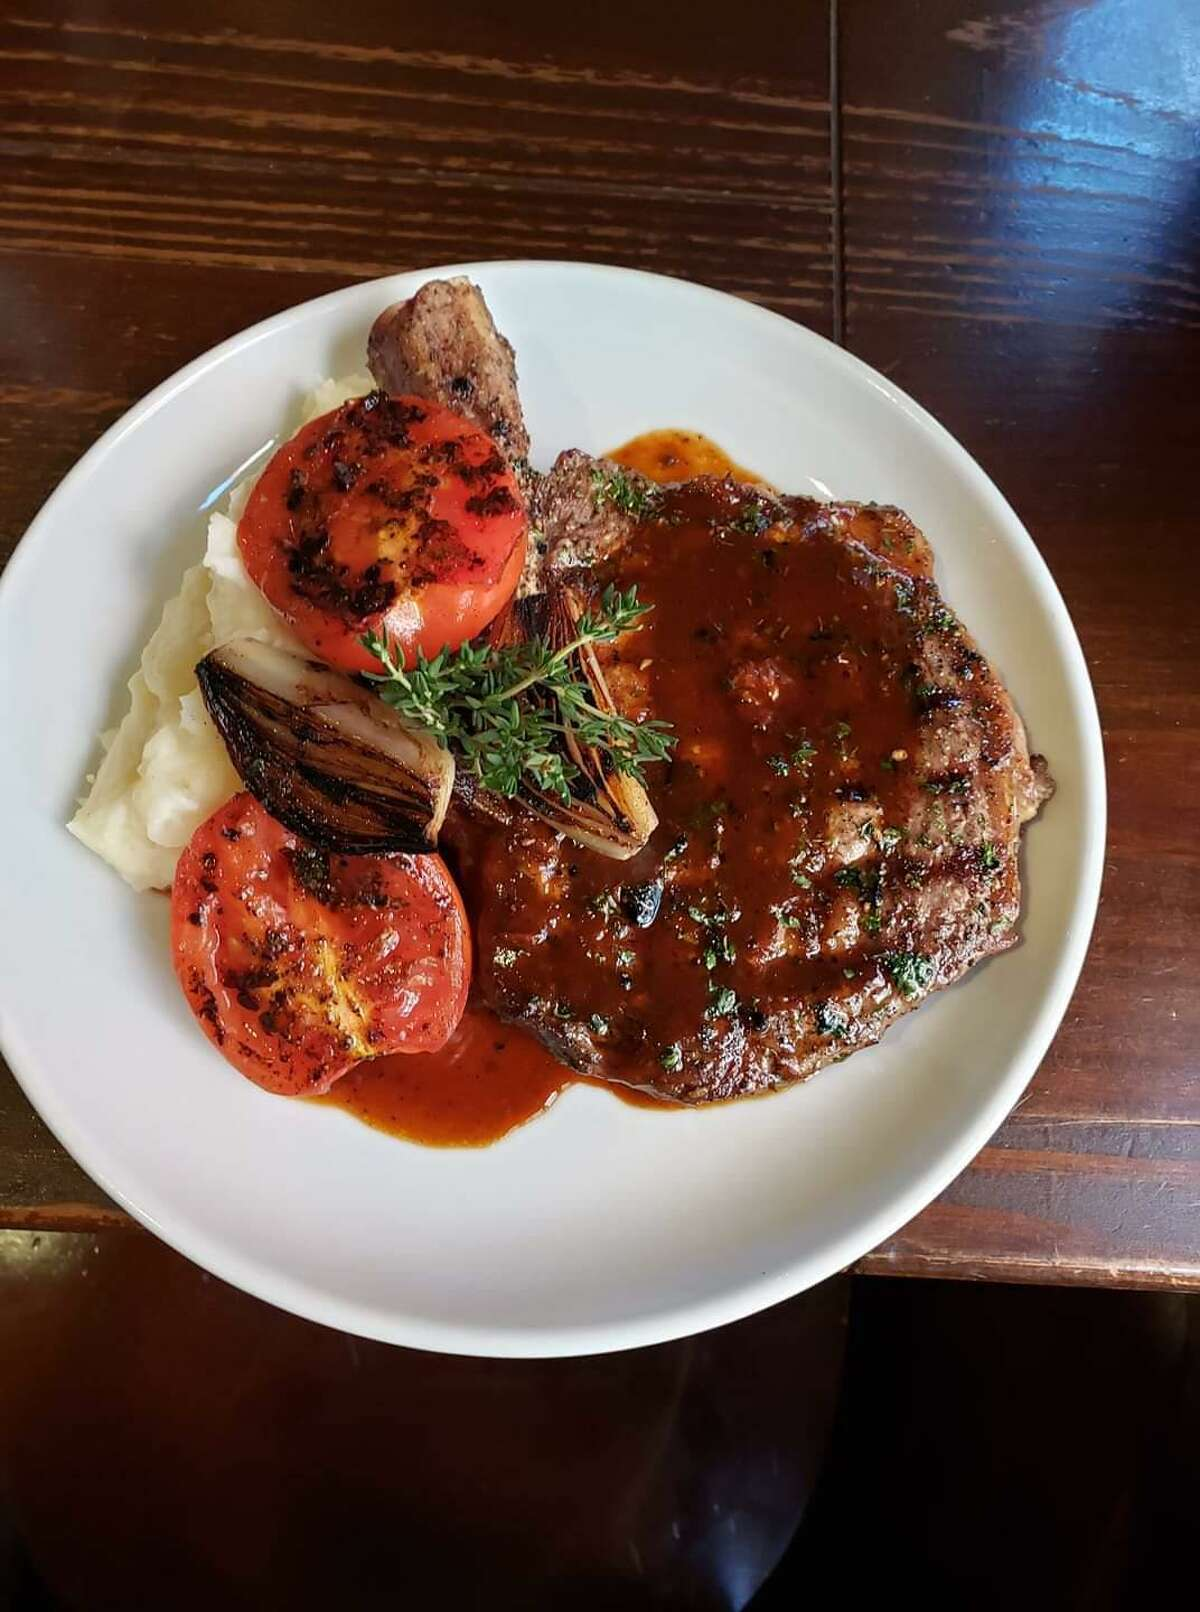 Boiler House Texas Grill & Wine Garden: 312 Pearl Parkway, Building 3, 210-354-4644, boilerhousesa.com . Will offer a $58 brunch special of grilled 18-ounce, cowboy cut rib-eye steak; three eggs and hickory bacon. The $58 dinner special will feature a grilled 18-ounce cowboy cut rib-eye steak, garlic mashed potatoes and charred vegetables. Curbside pick-up and indoor dining.